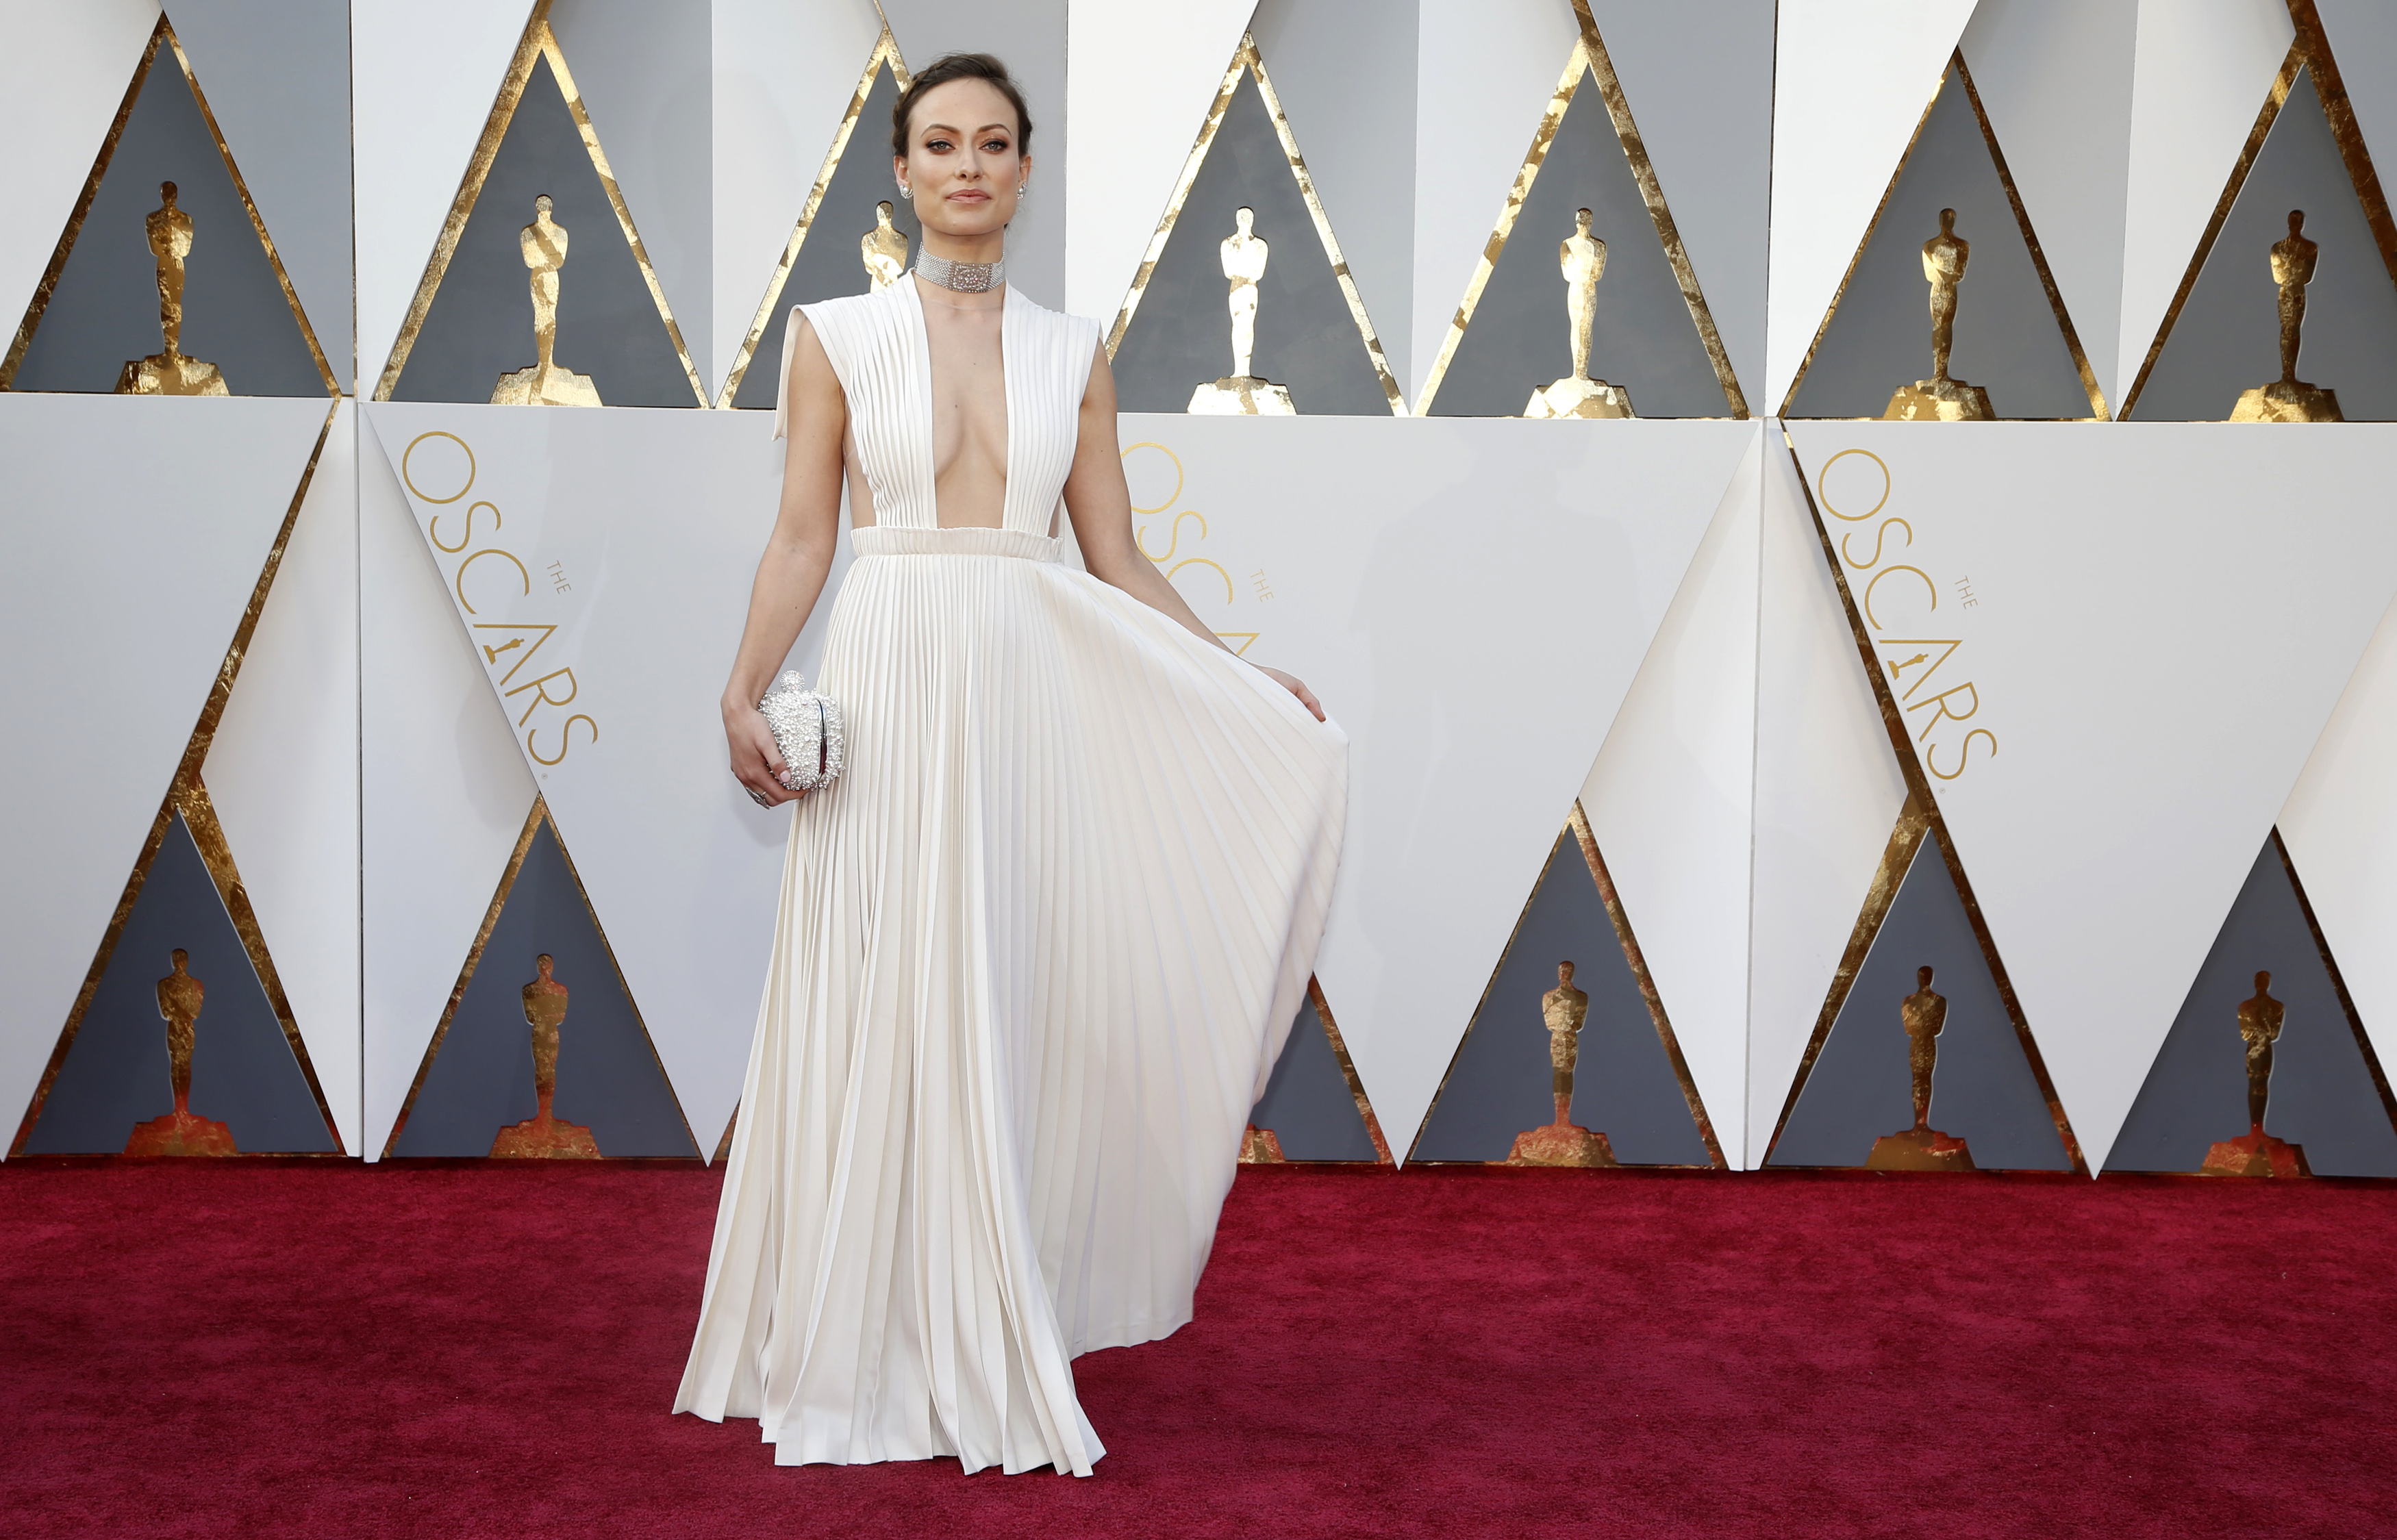 Actress Oliva Wilde arrives wearing Valentino at the 88th Academy Awards in Hollywood, California February 28, 2016.